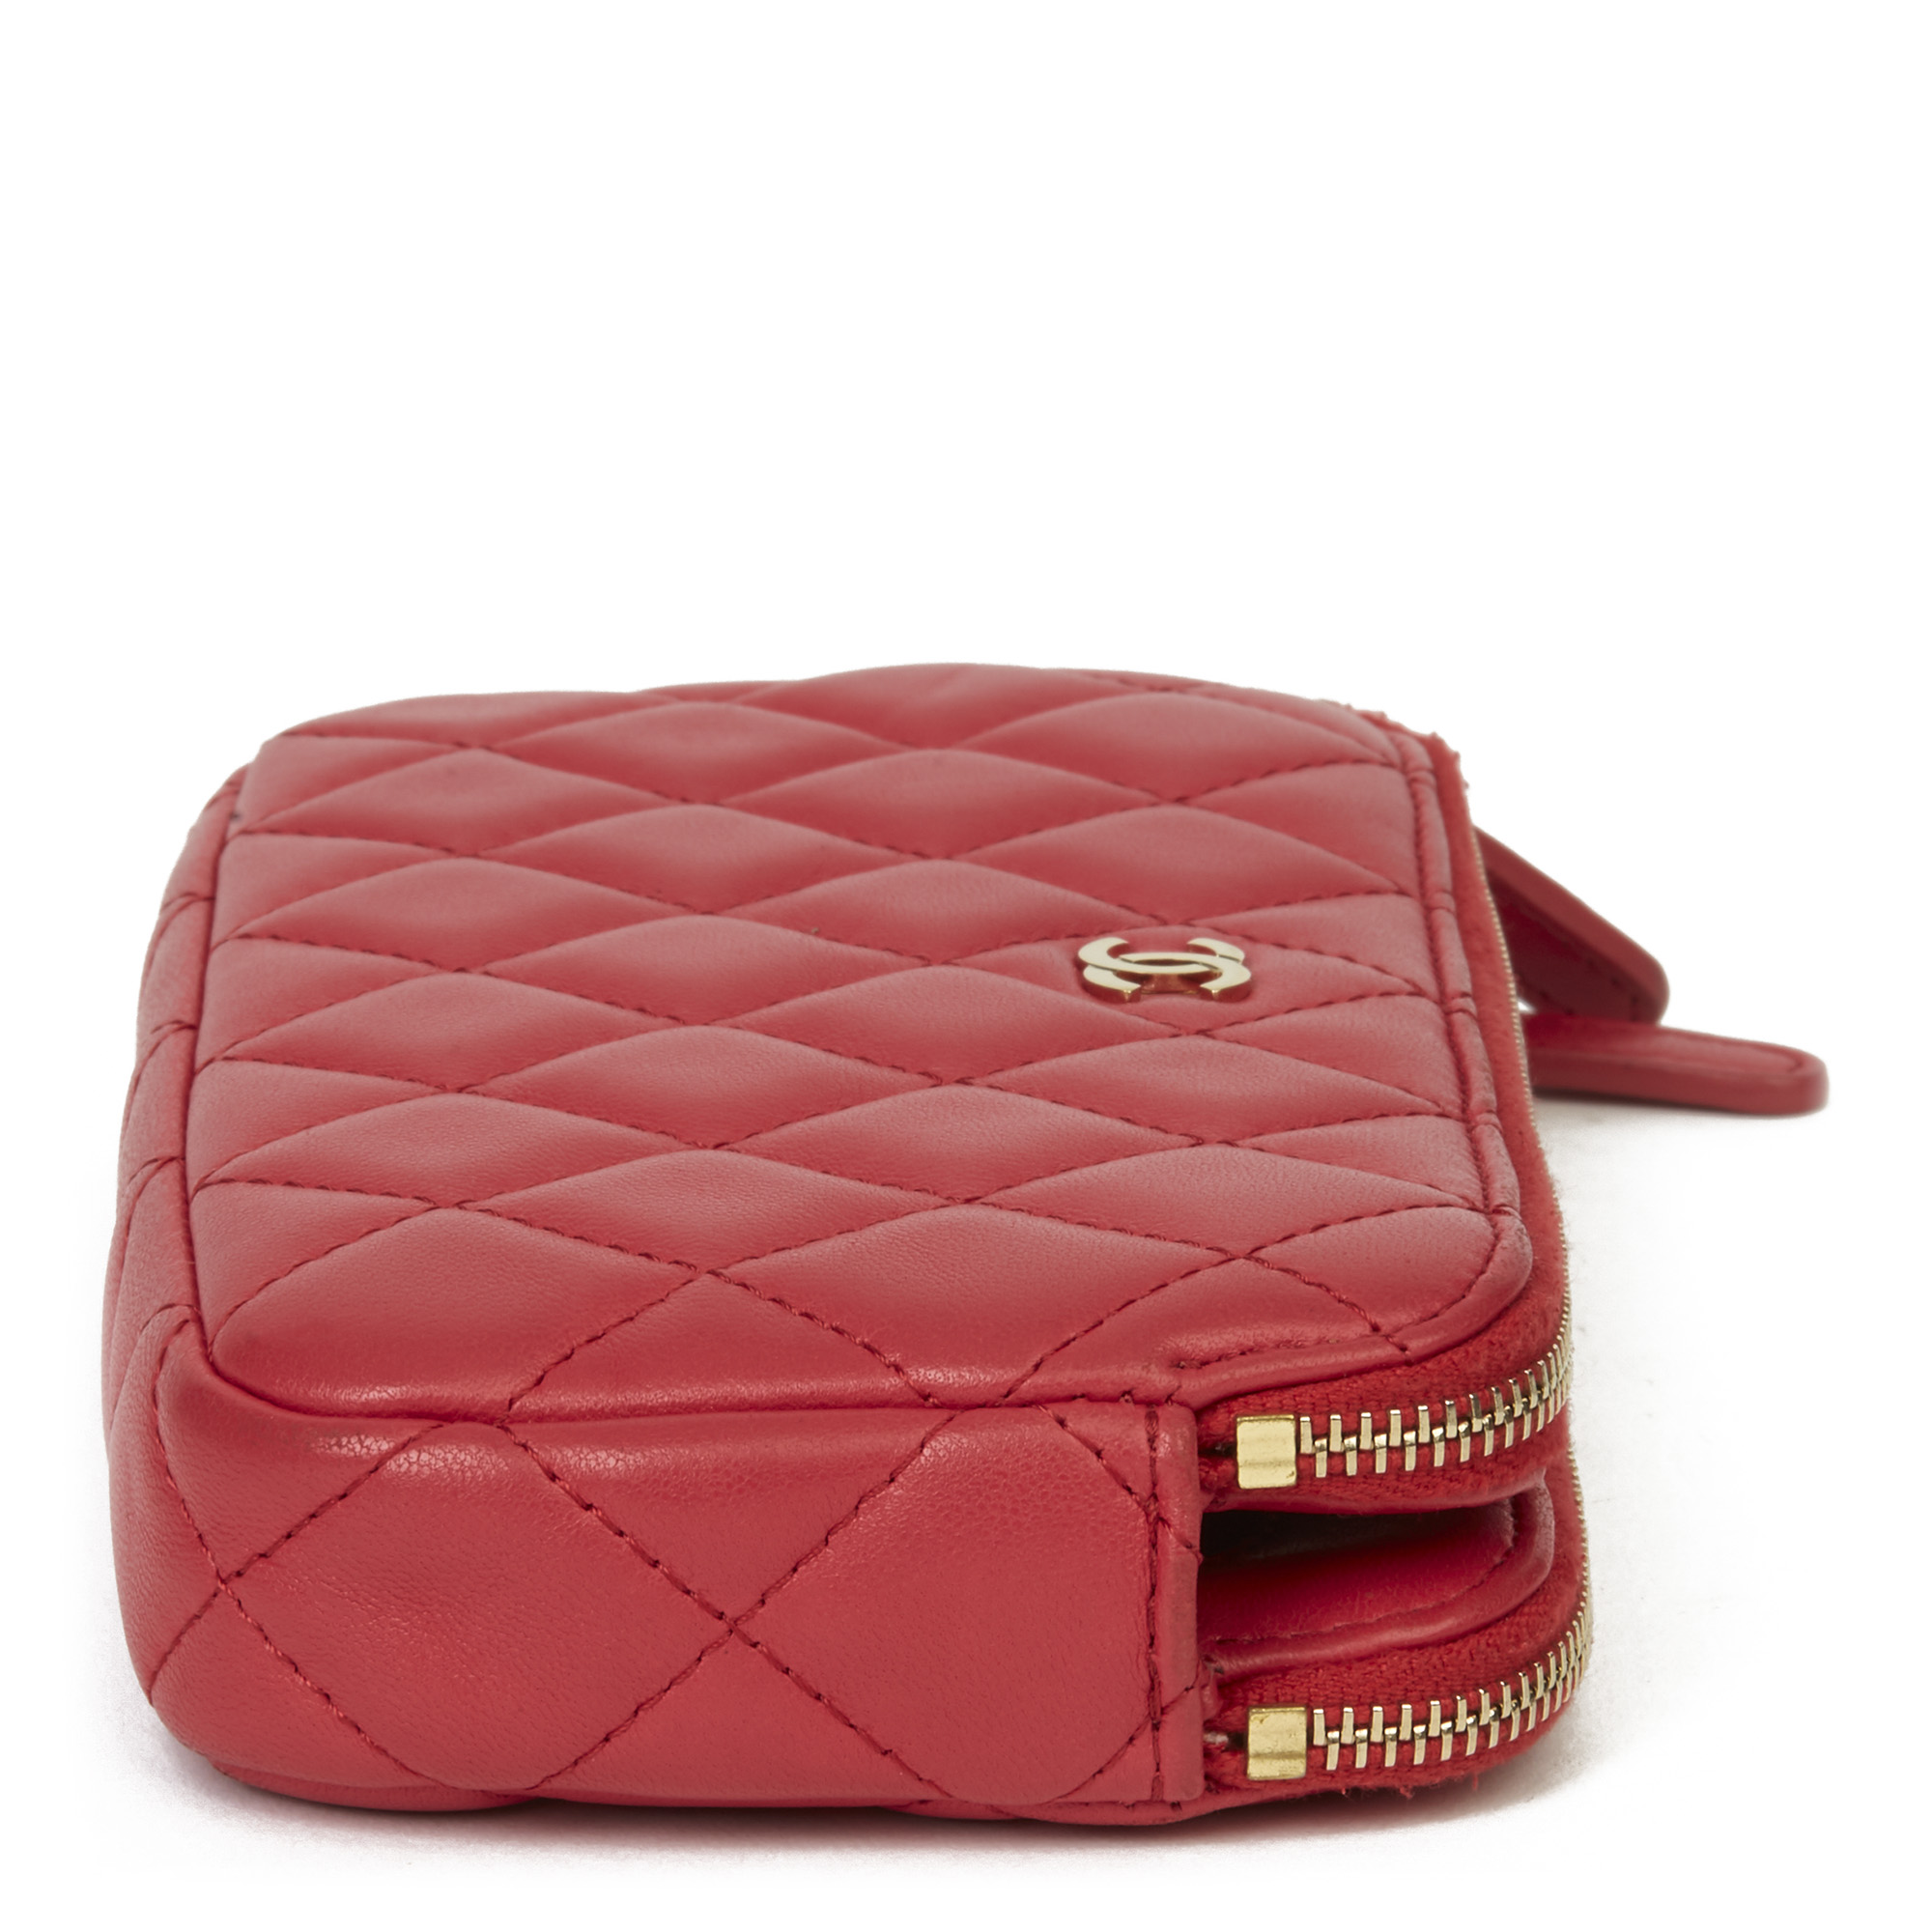 Chanel Red Quilted Lambskin Double Zip Wallet-on-Chain WOC - Image 10 of 11